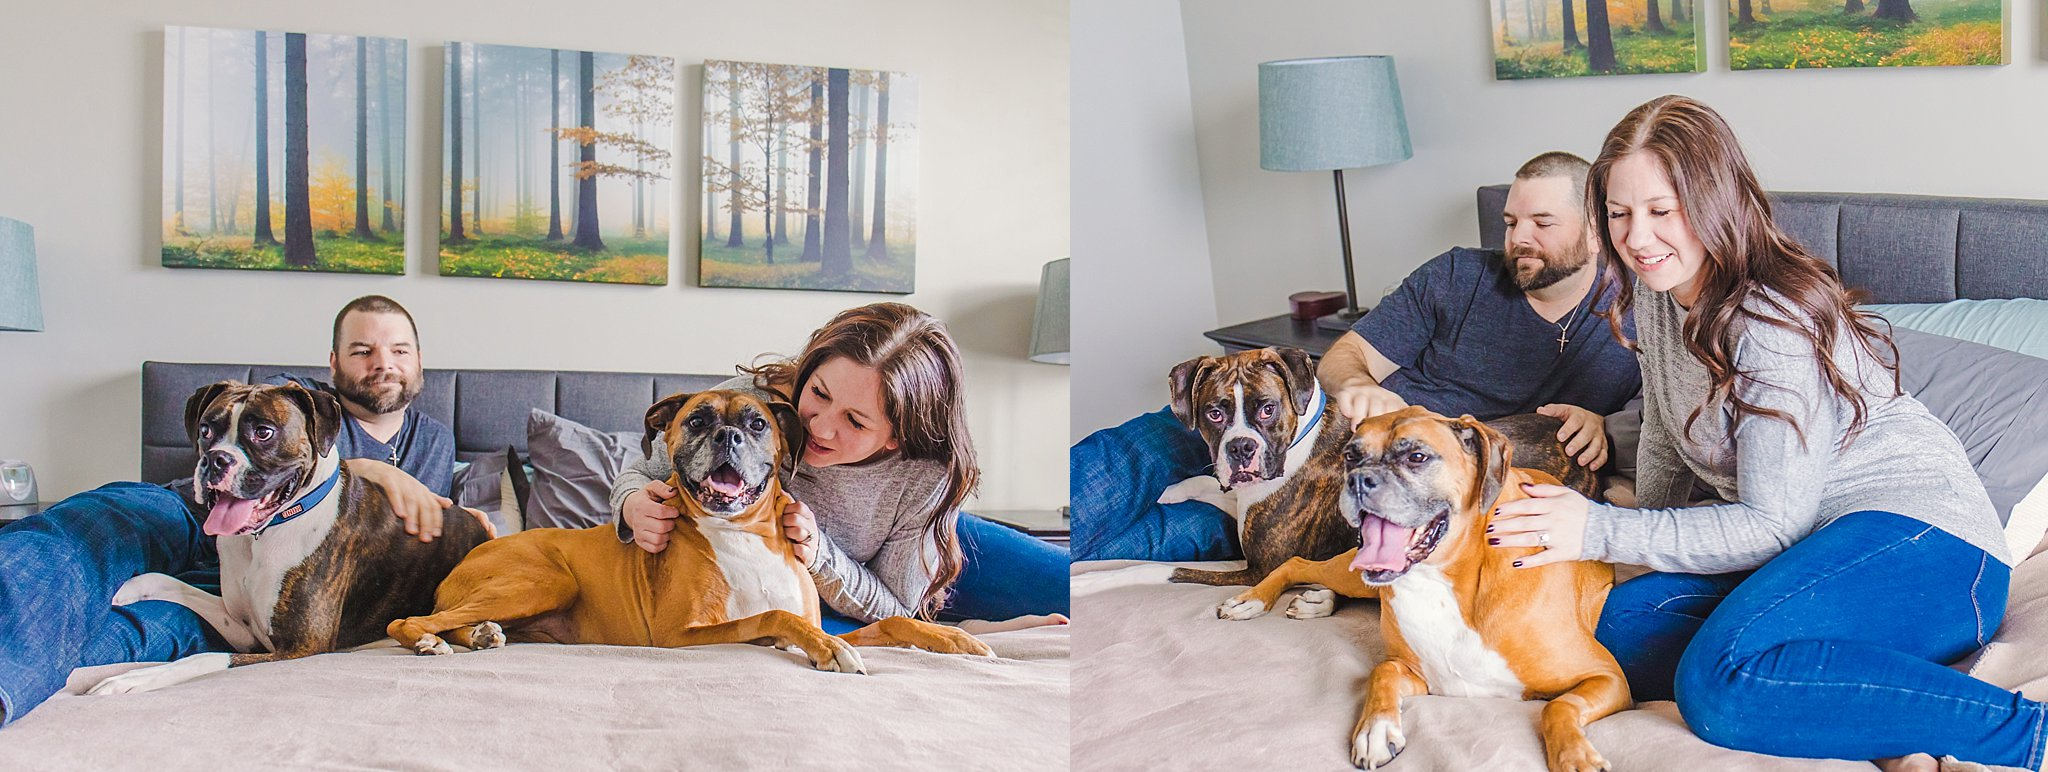 Salt Lake City,couple,hilary gardiner photography,home,in home lifestyle session,lifestyle,pets,photographer,utah valley,